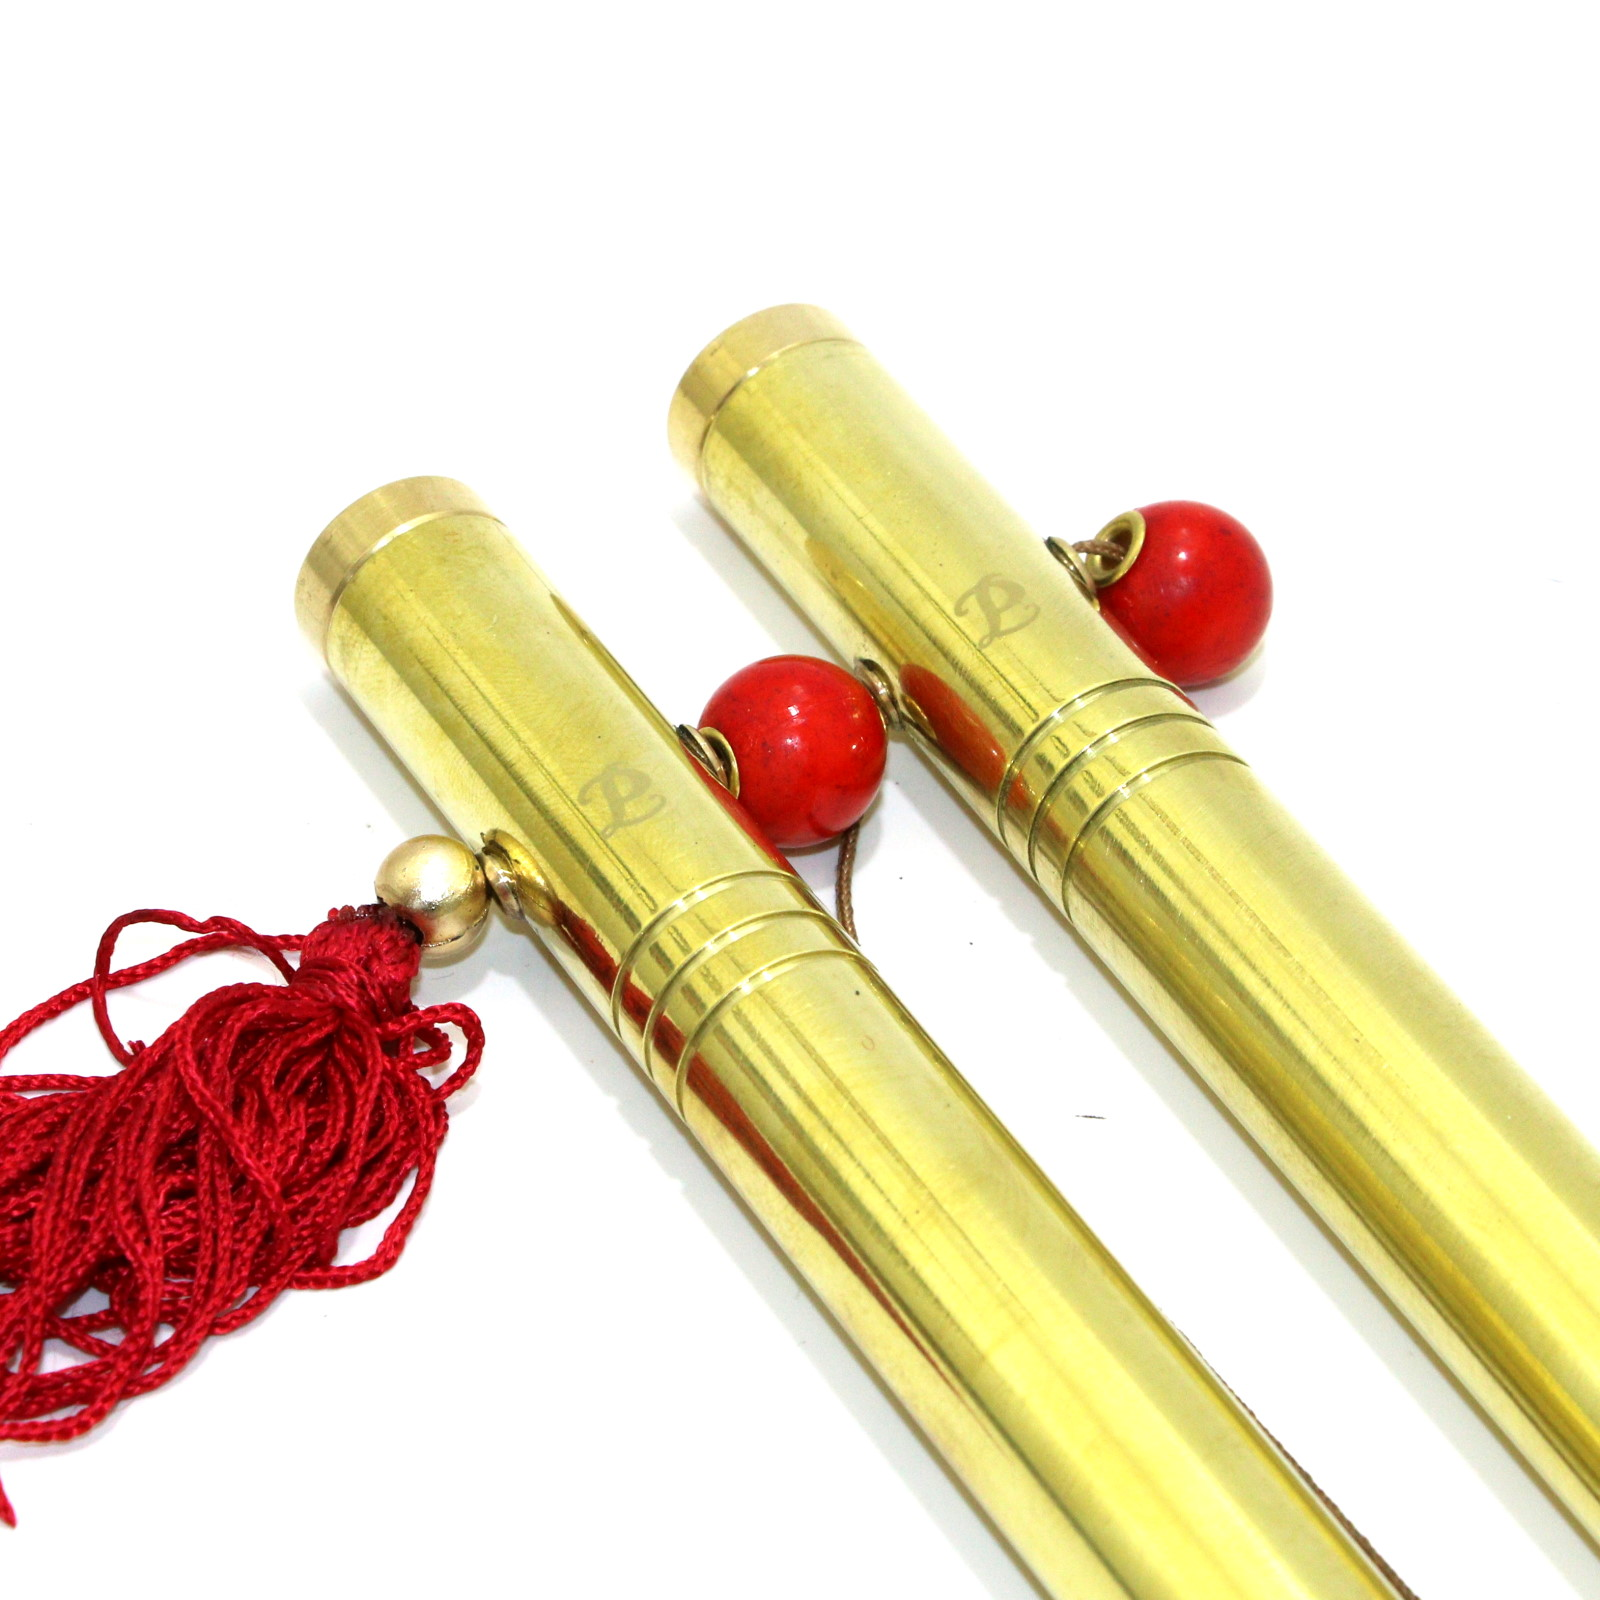 Chinese Sticks (Brass) by Petrie-Lewis